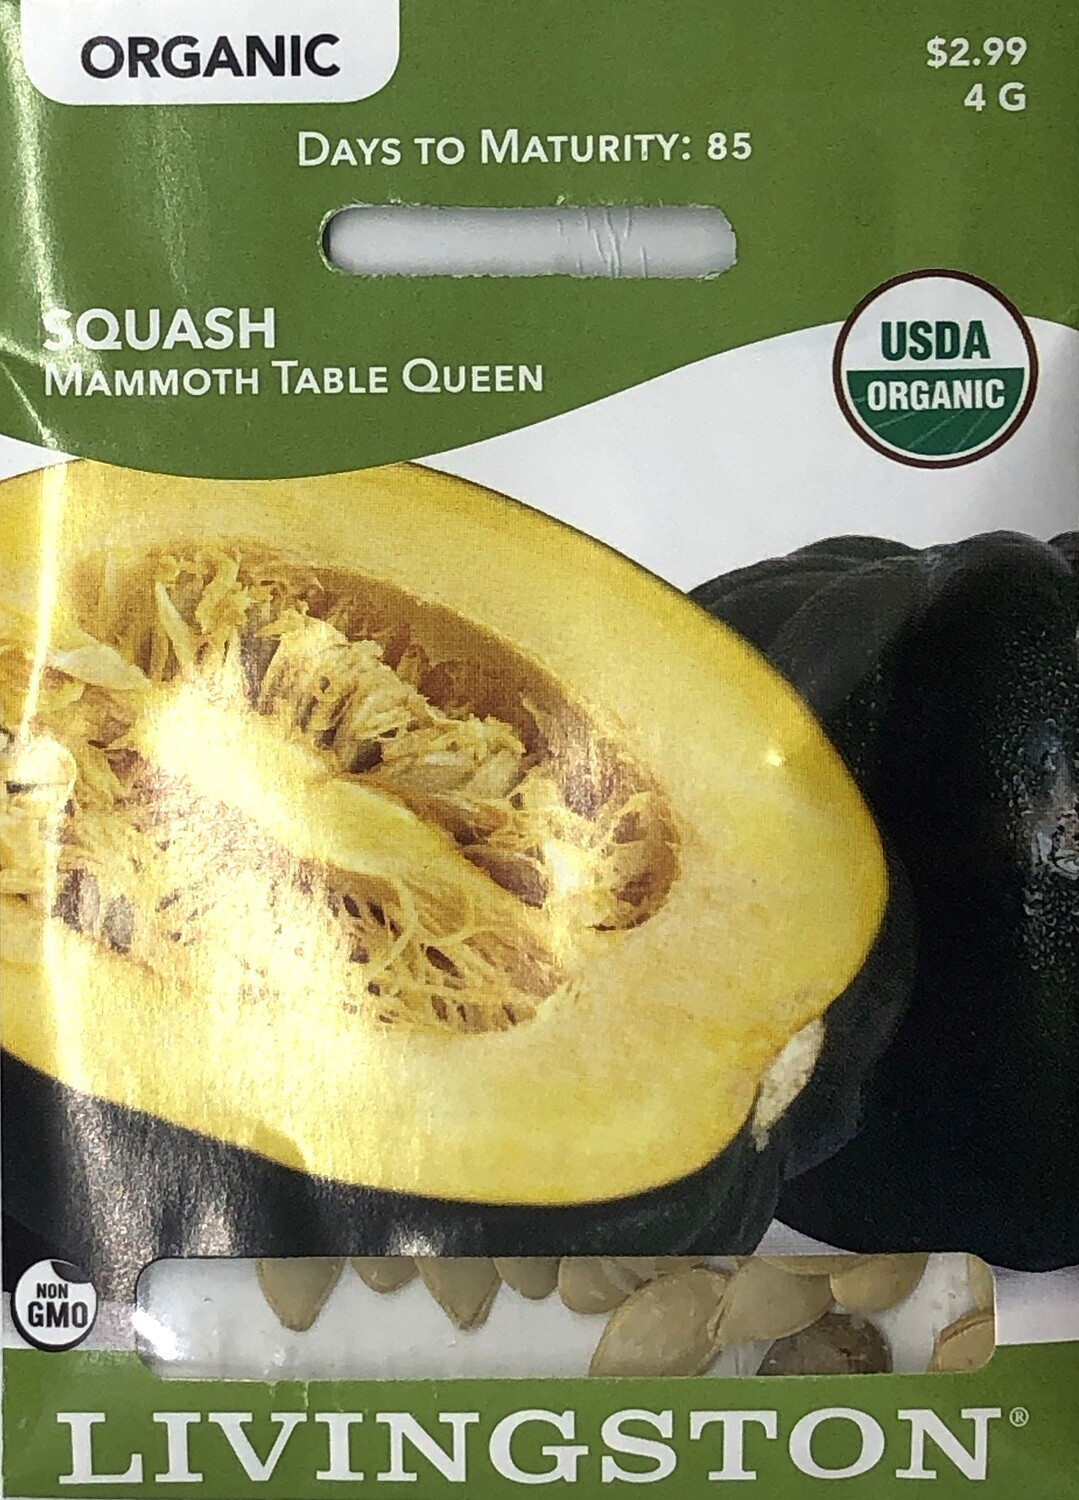 SQUASH - ORGANIC - MAMMOTH TABLE QUEEN BUSH